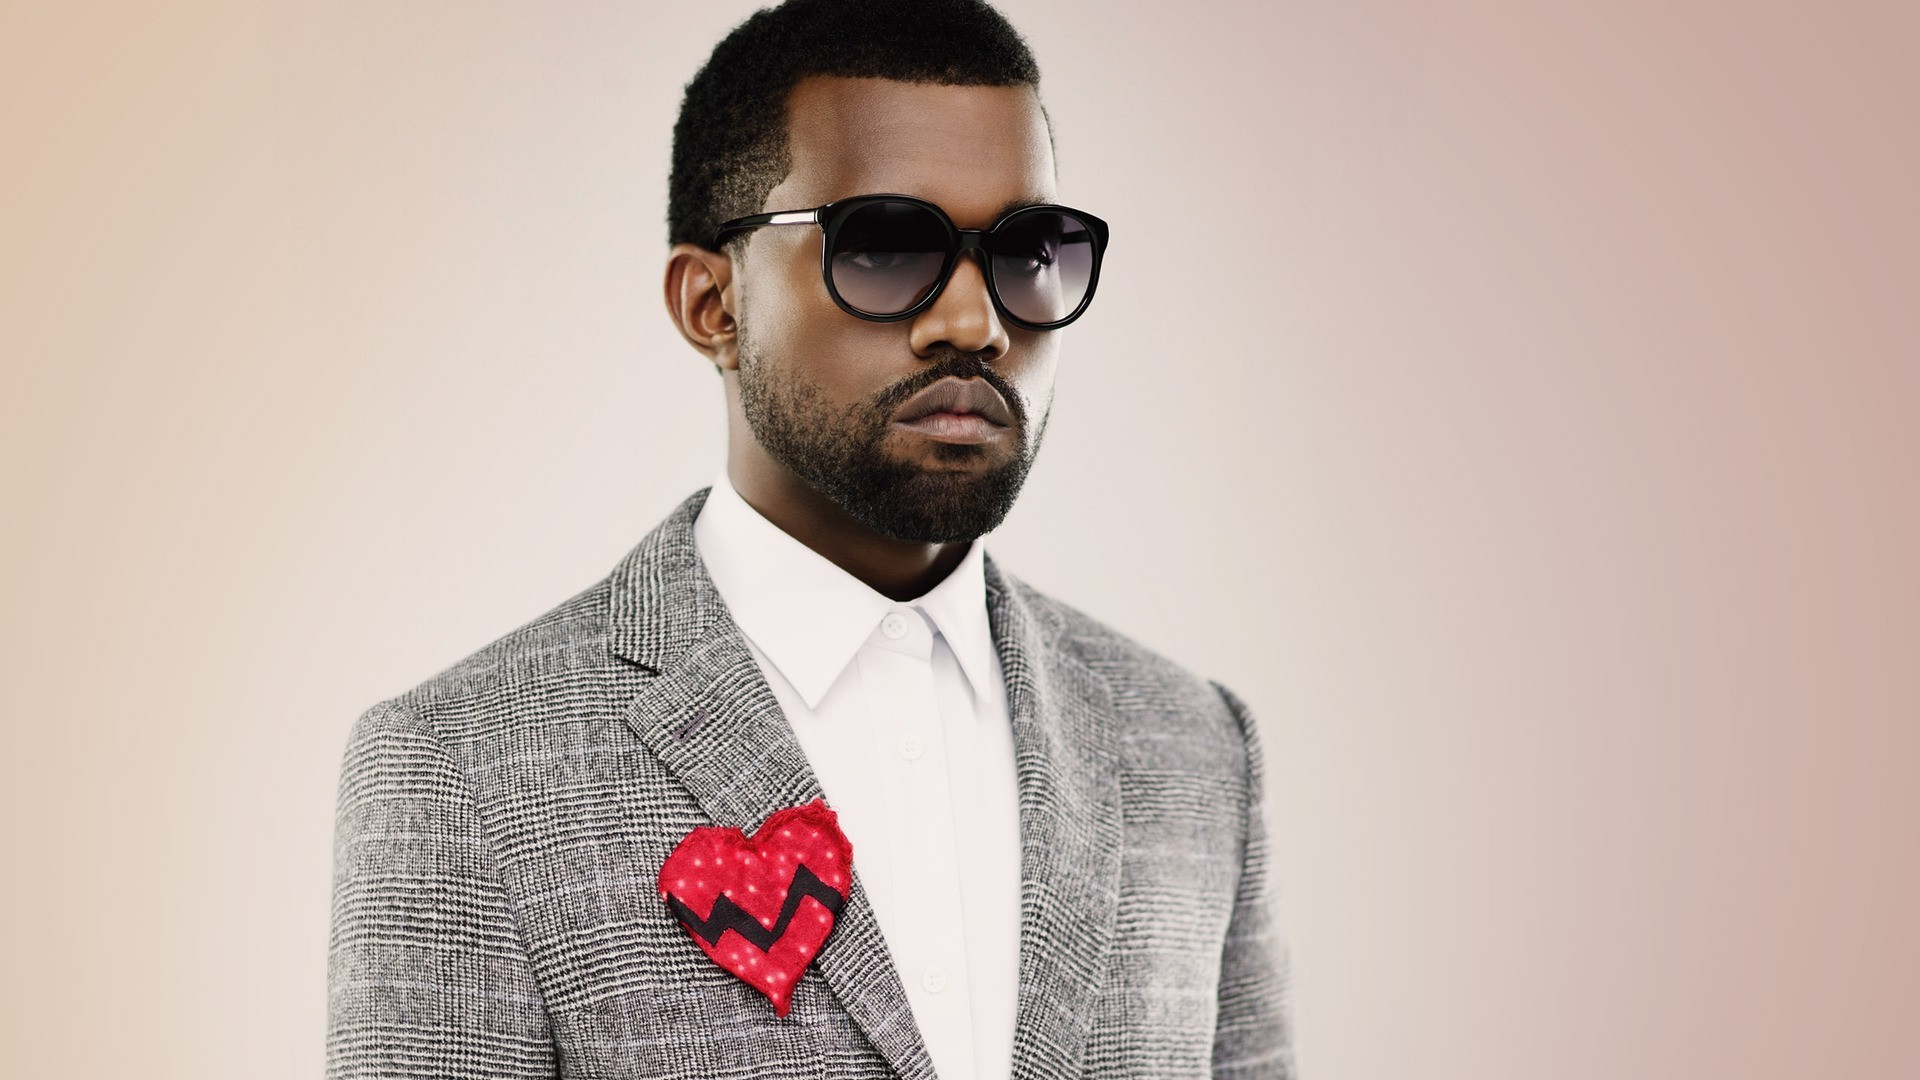 analysis of kanye west is the definition On saturday, kanye west premiered his first foray into filmmaking, the 35-minute abstract musical short, runaway (watch it here) filled with over-the-top imagery, heavy metaphors and unexpected.